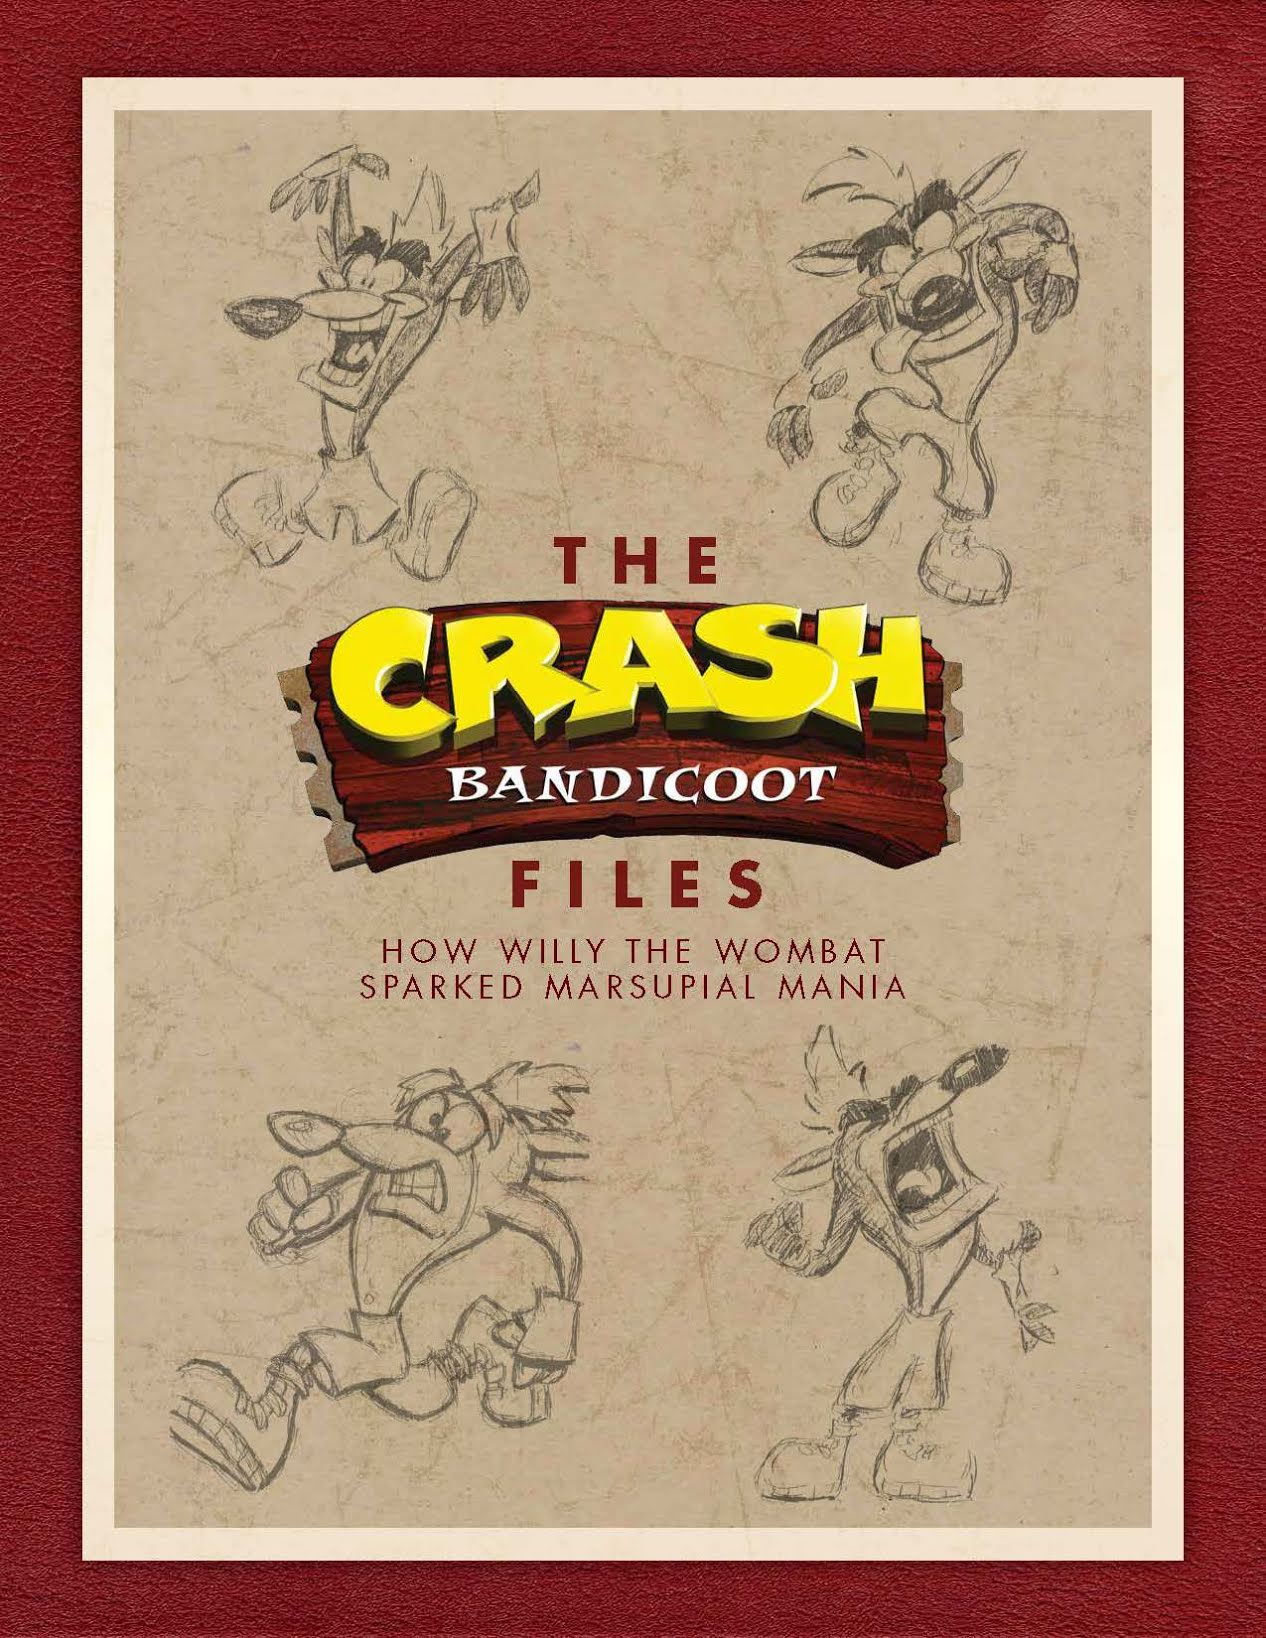 crash bandicoot files cover - Trwają prace nad artbookiem The Crash Bandicoot Files!